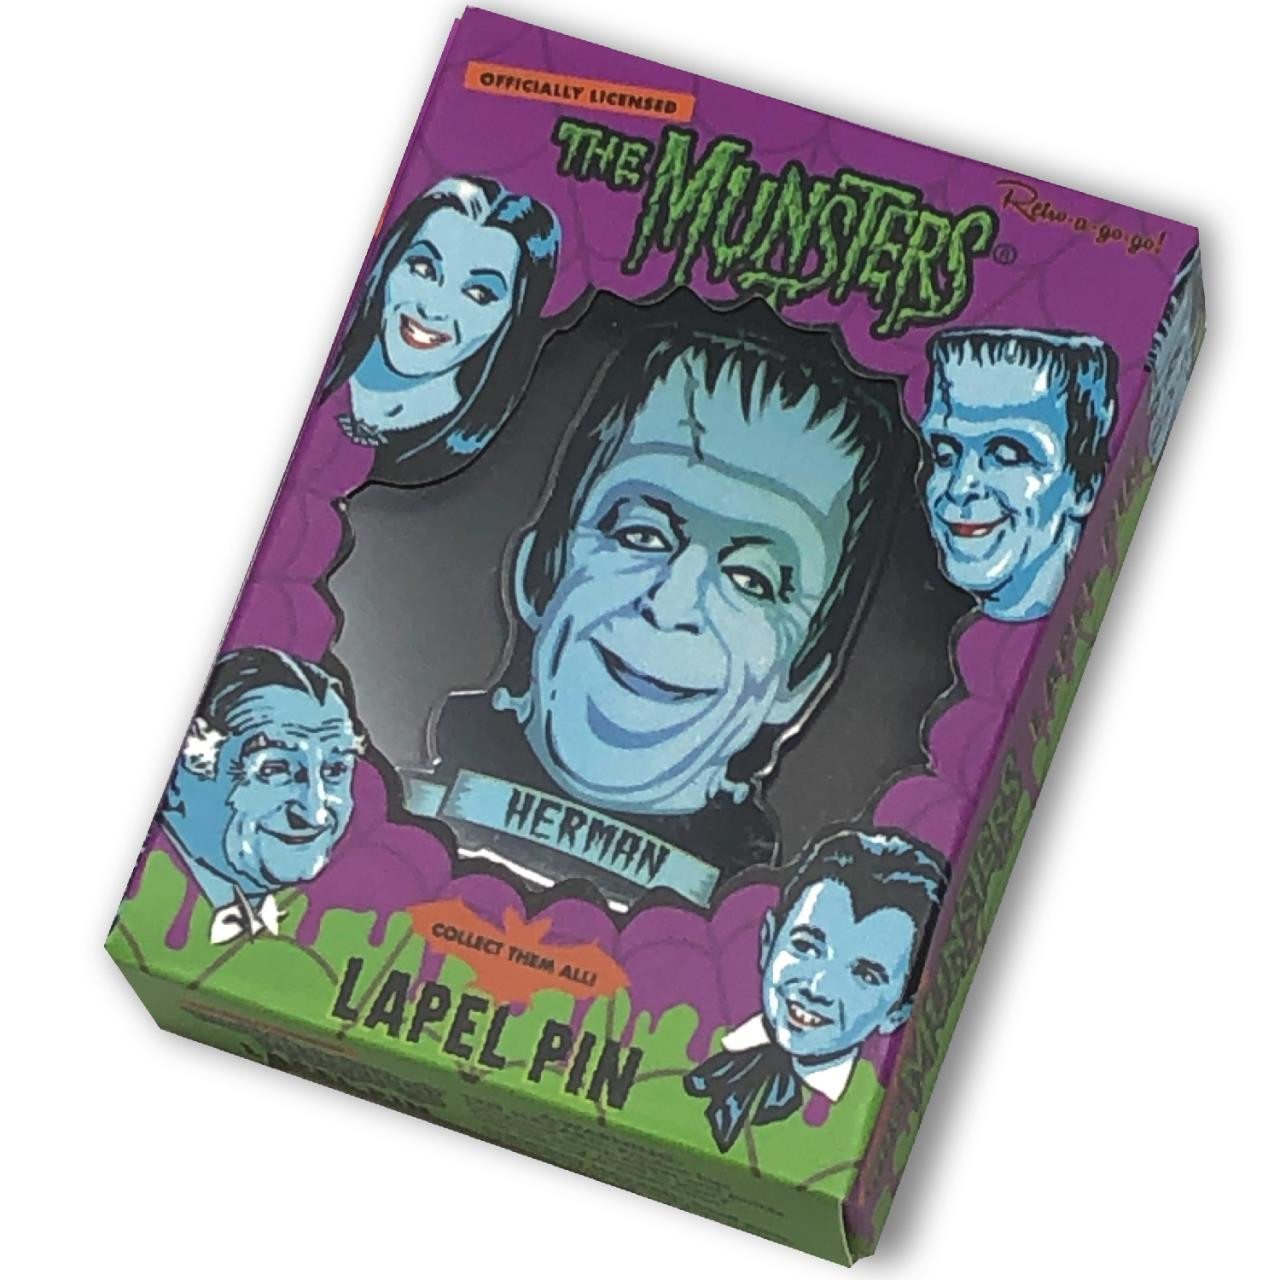 Herman Munster Collectable Pin* - 0659682815473